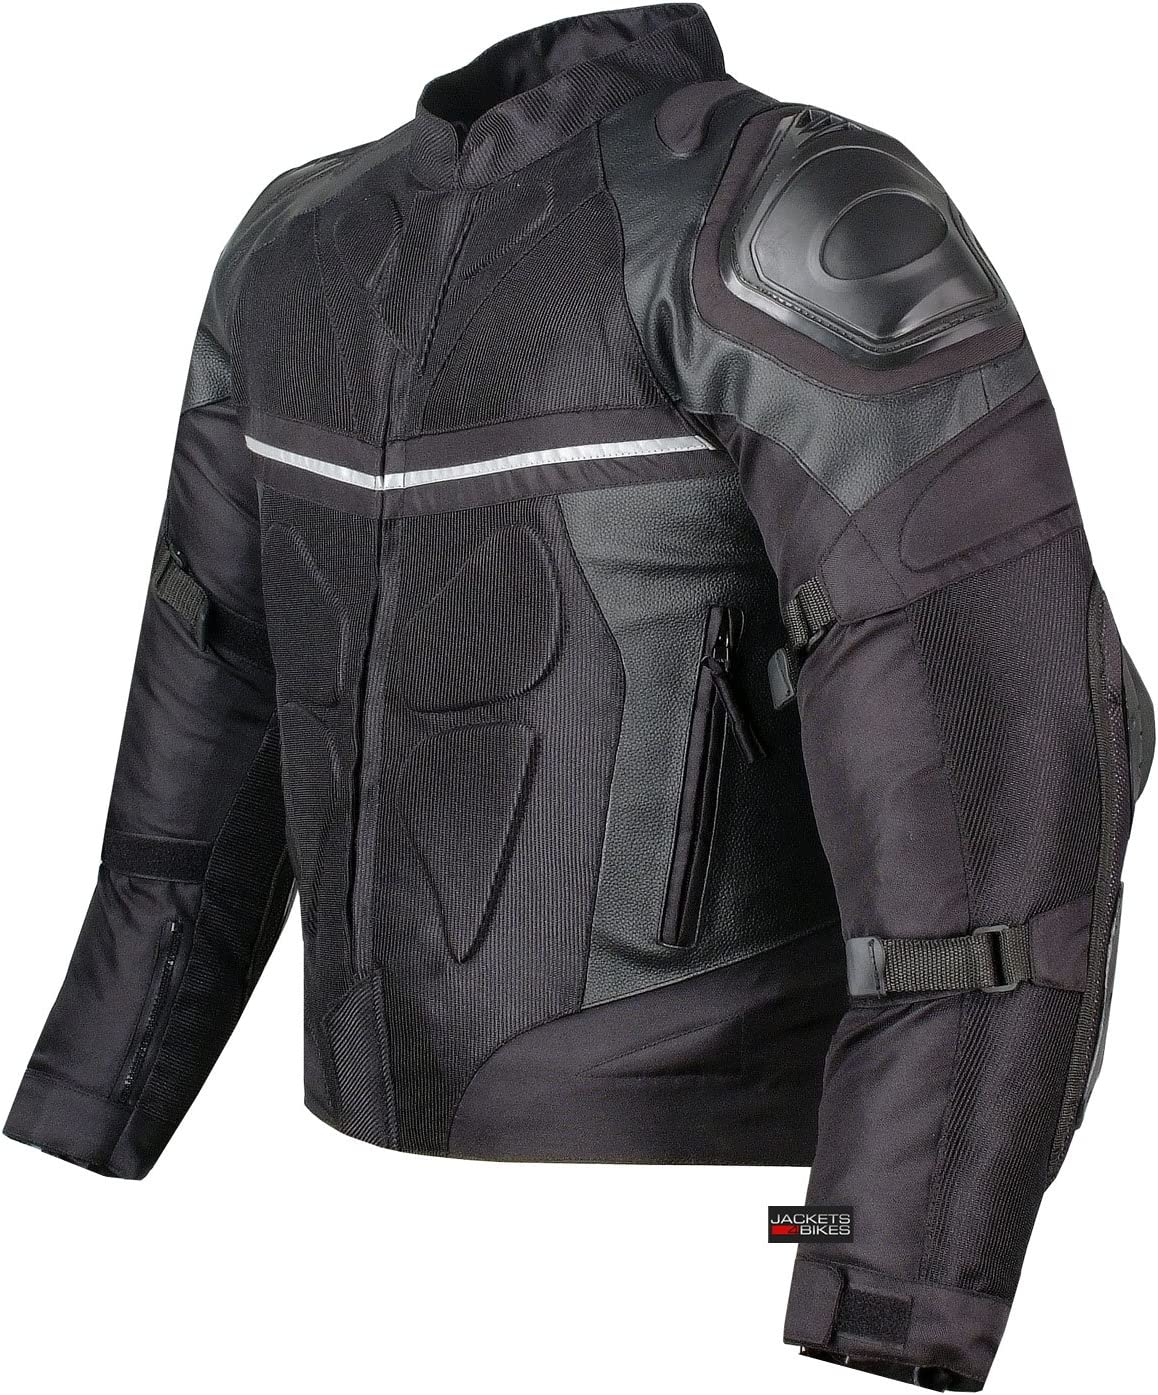 PRO LEATHER & MESH MOTORCYCLE WATERPROOF JACKET BLACK WITH EXTERNAL ARMOR XL: Automotive